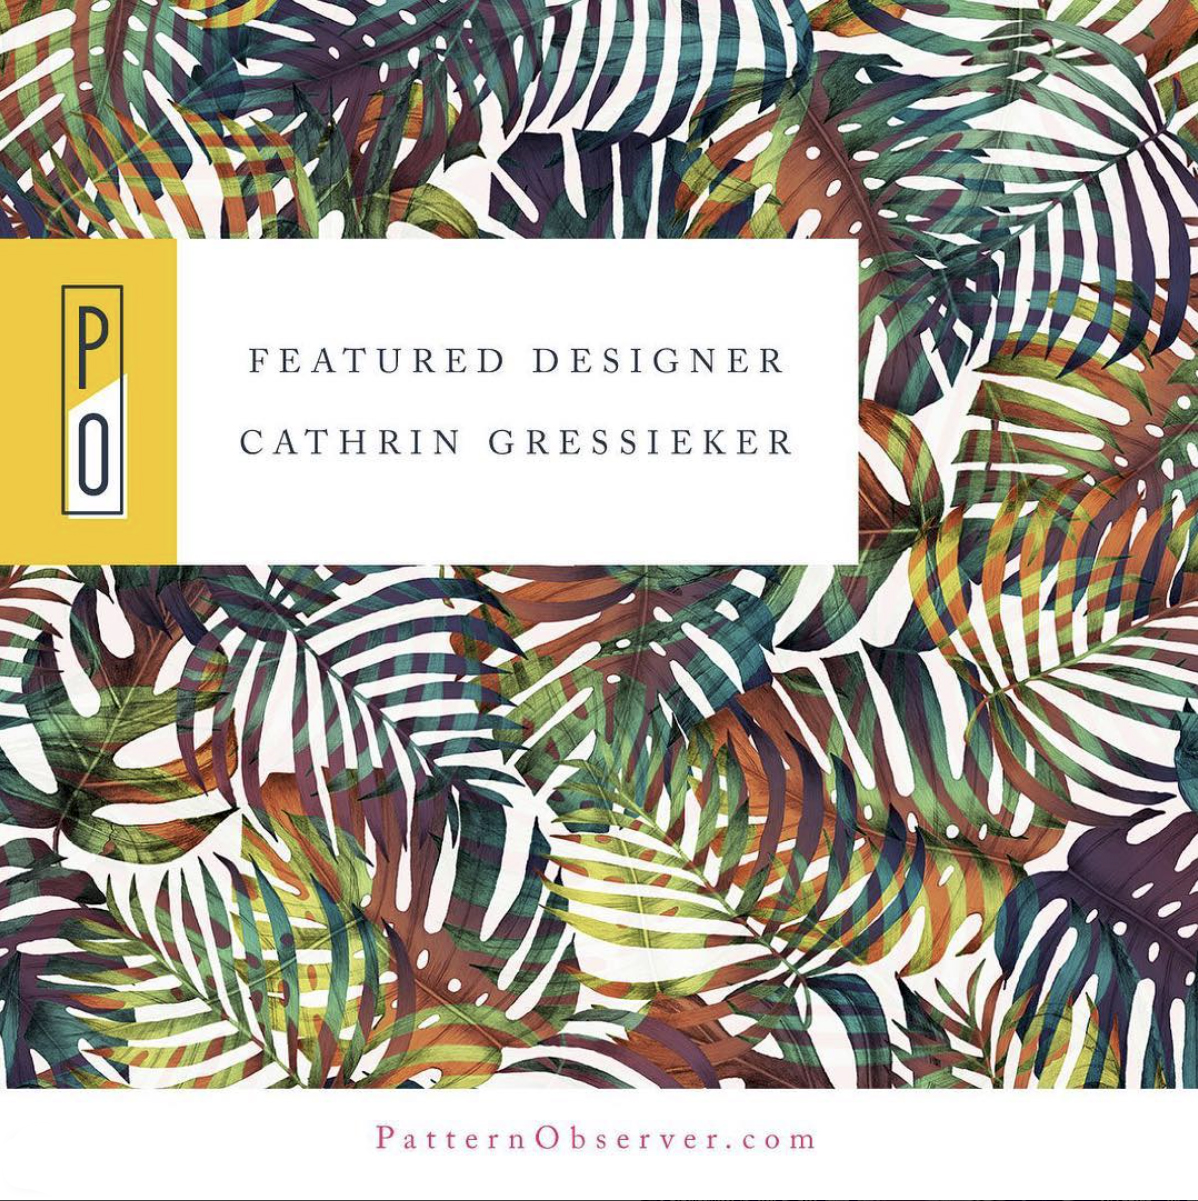 Patternobserver_Featured Designer Cathrin Gressieker